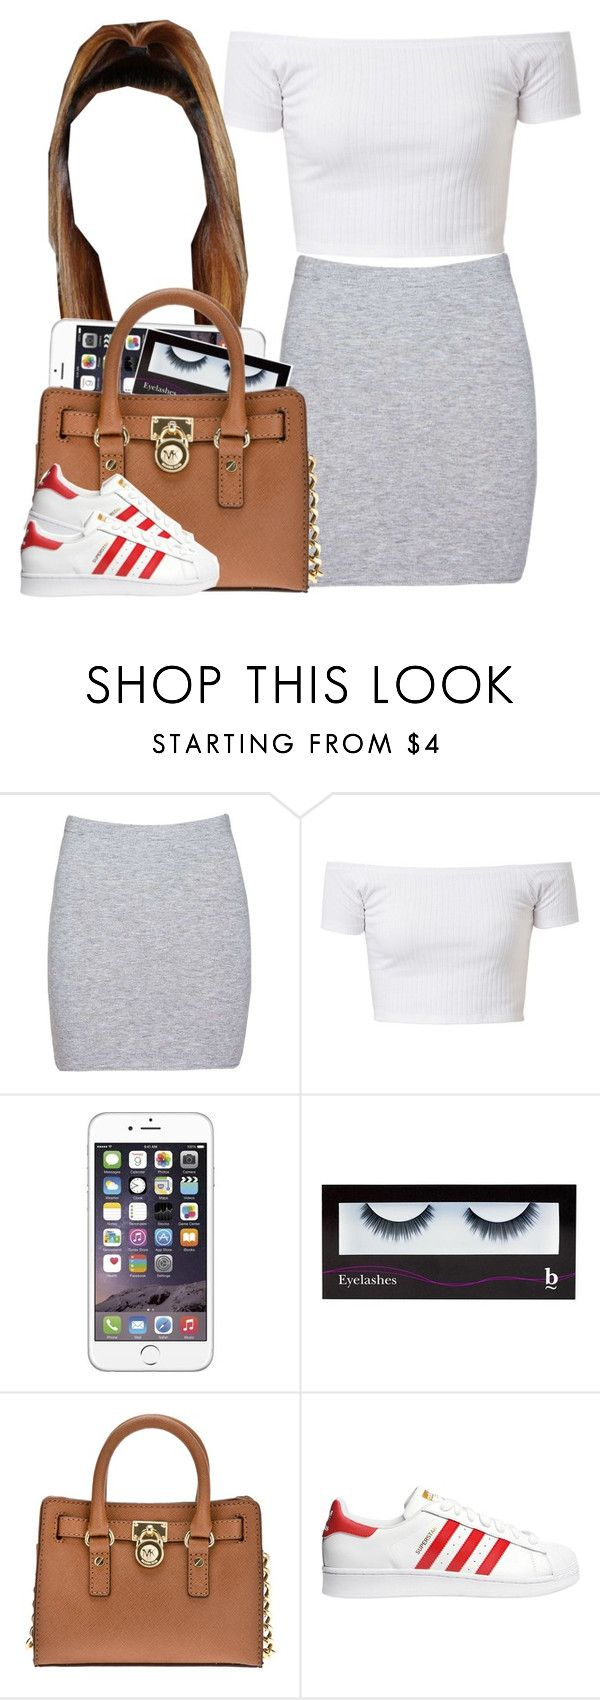 """""""Mall"""" by trillest-queen ❤ liked on Polyvore featuring Boohoo, BBrowBar, MICHAEL Michael Kors, adidas Originals, women's clothing, women, female, woman, misses and juniors"""